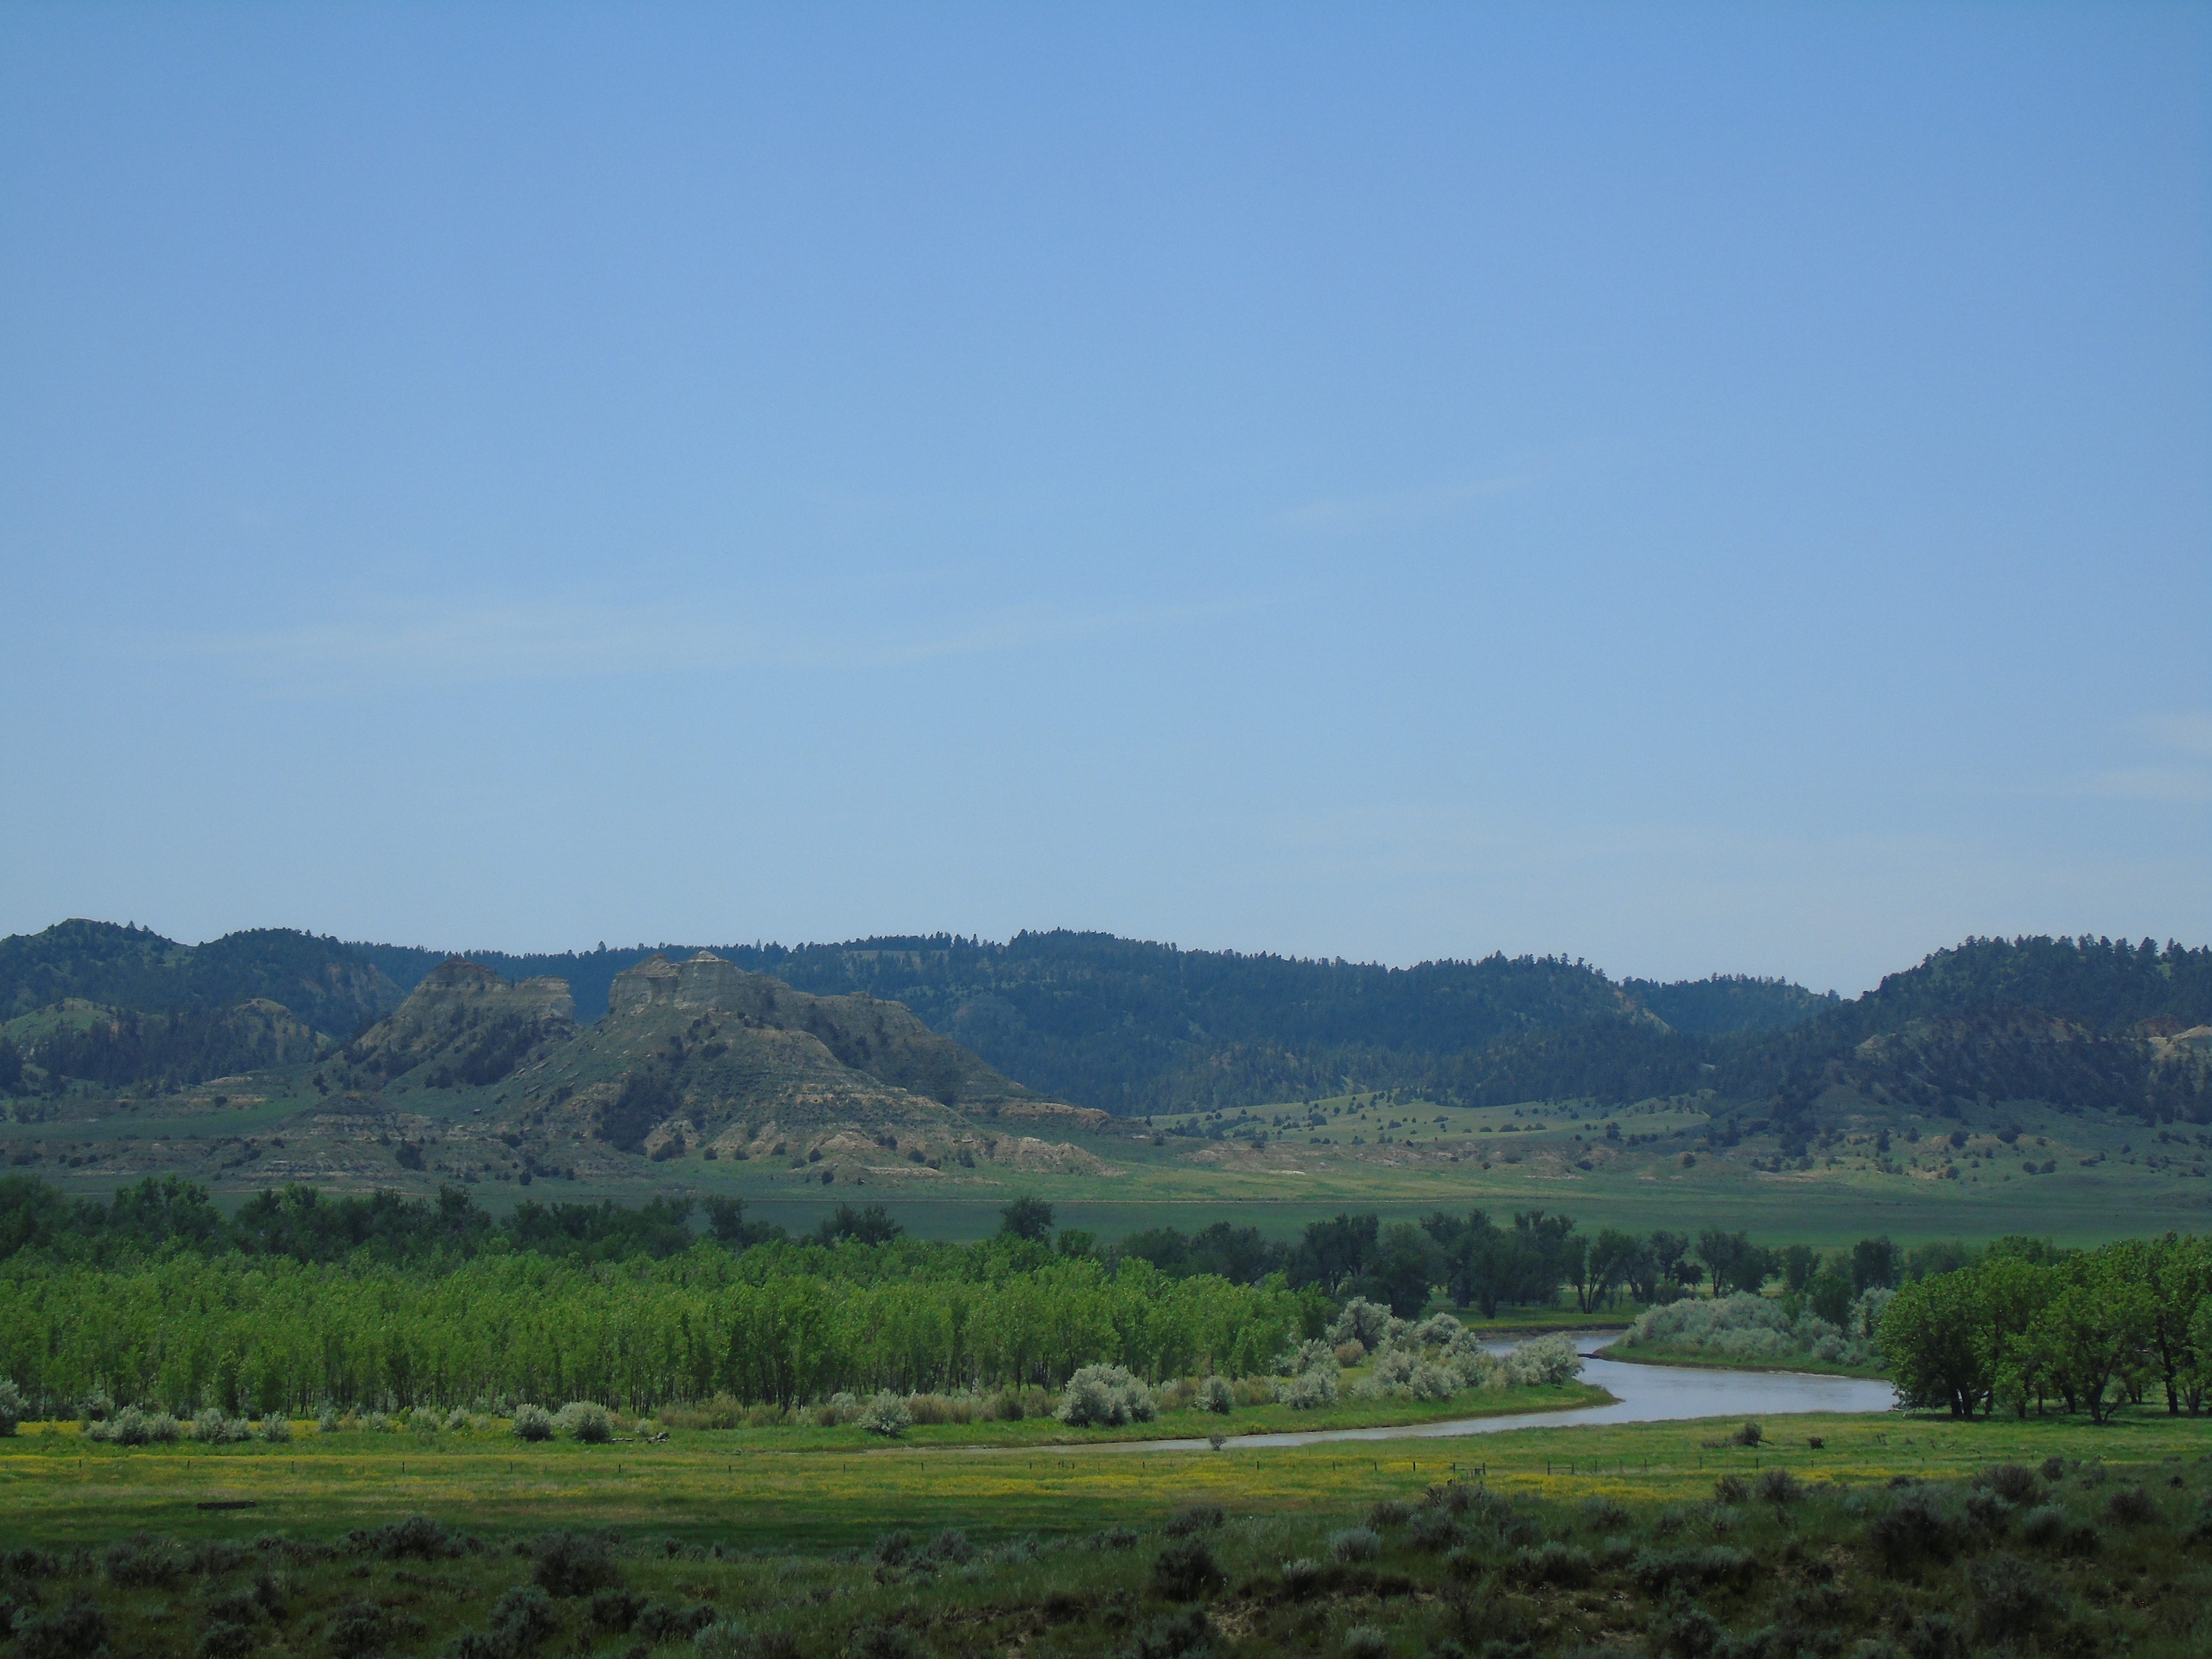 The Powder River winds through a valley southwest of Broadus. On March 17, 1876, the US Cavalry led by Col. Joseph J. Reynolds was defeated by an outnumbered band of Cheyenne and Sioux.